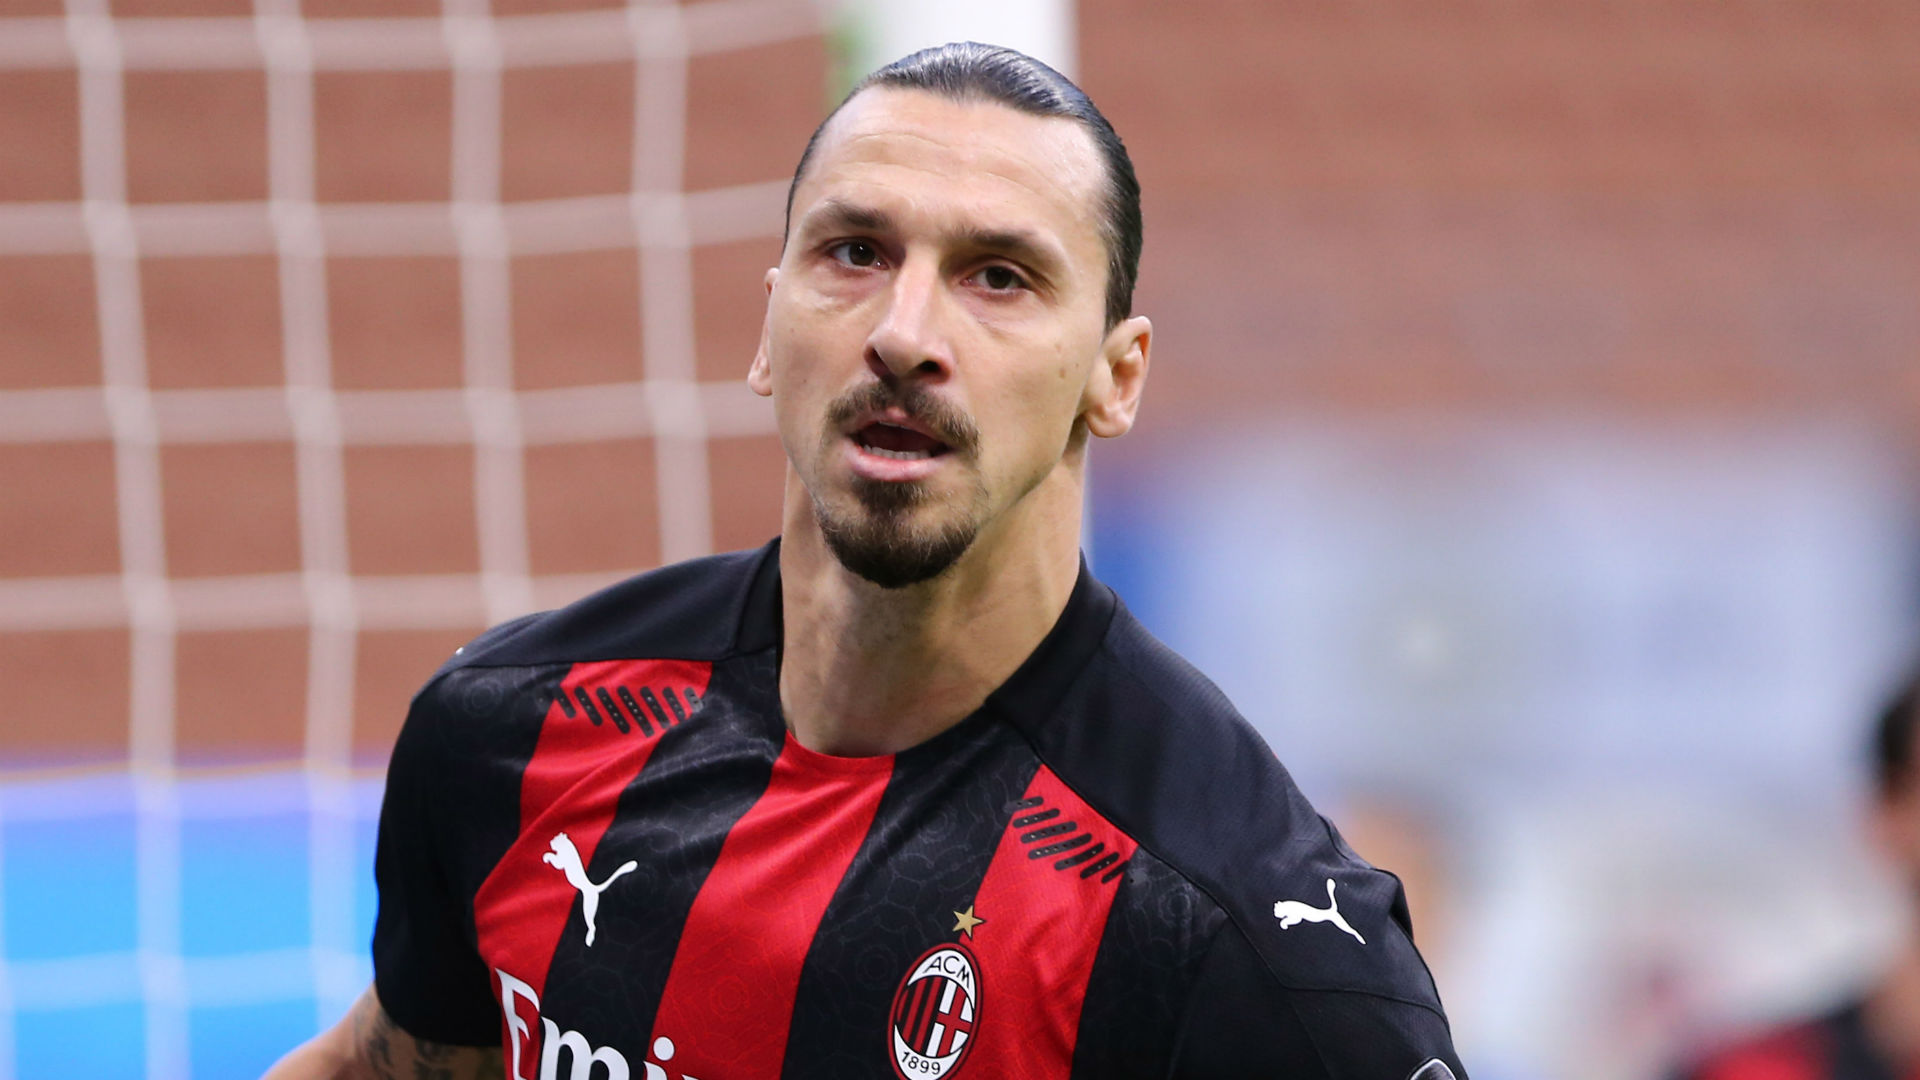 Ibrahimovic: Milan can win Scudetto but it's a long road